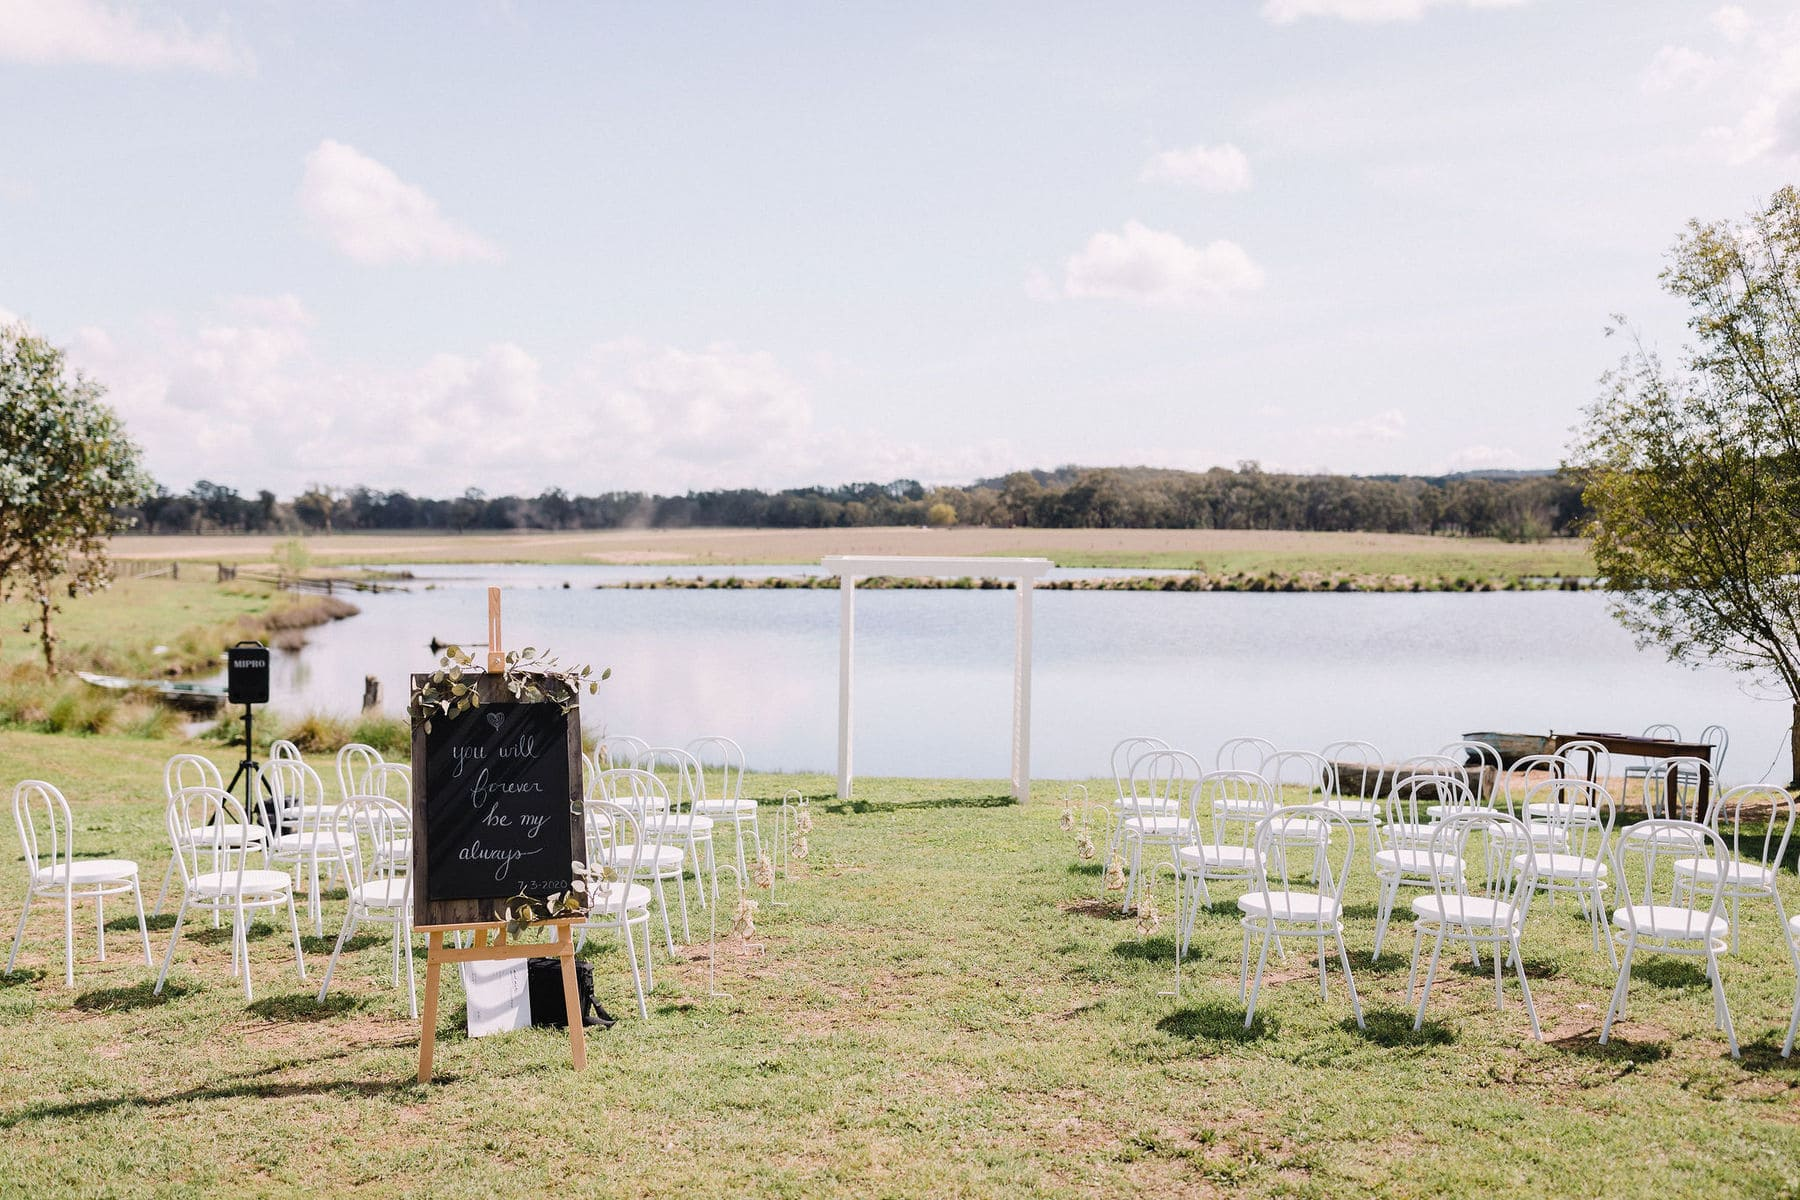 Bushfield Farm Pop-Up Wedding Days 2021